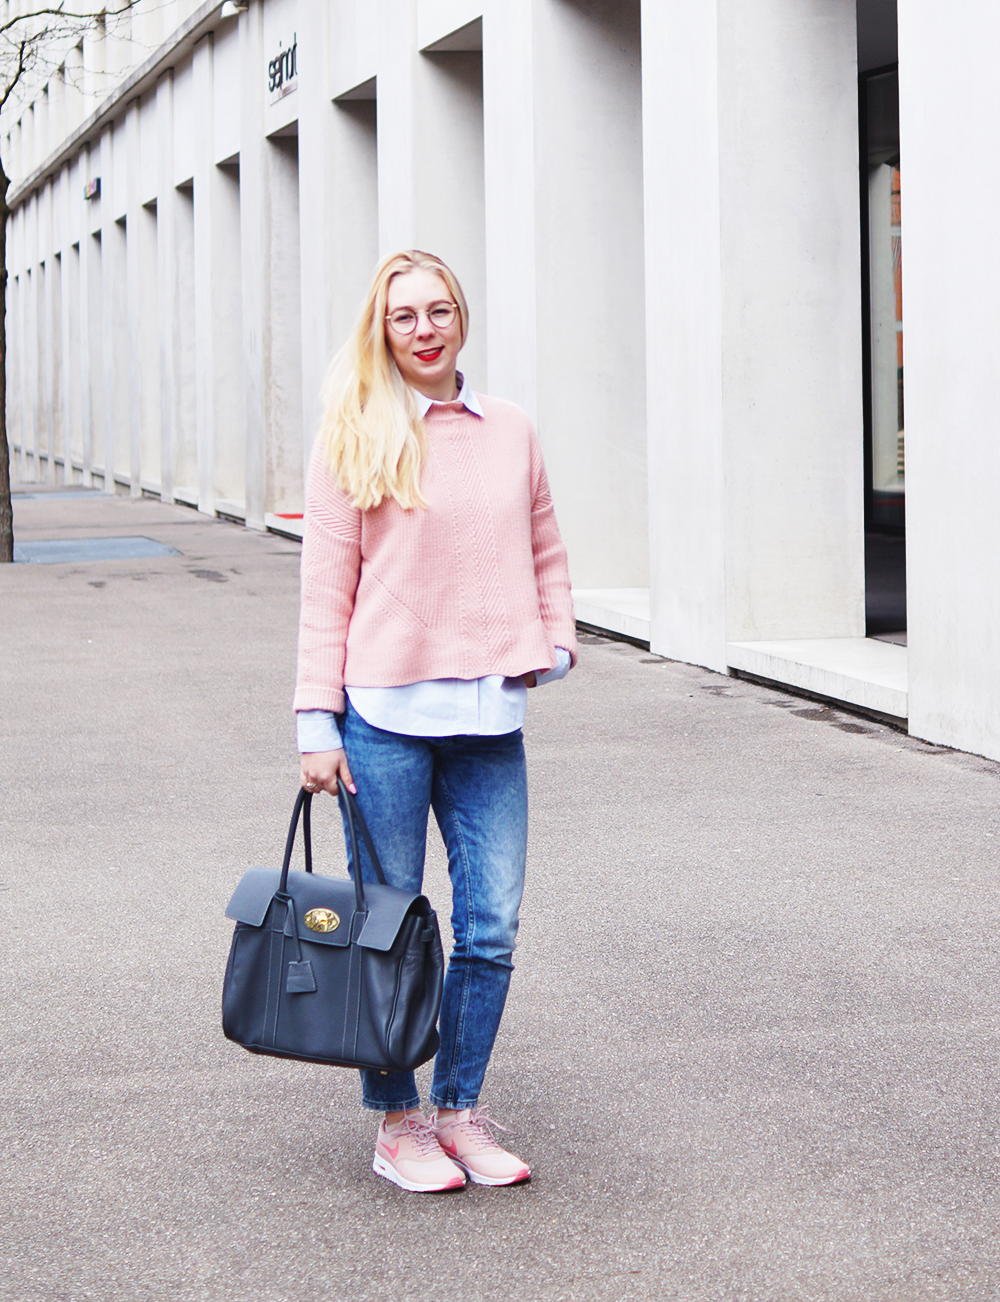 A splash of pink – my Outfit of the Day